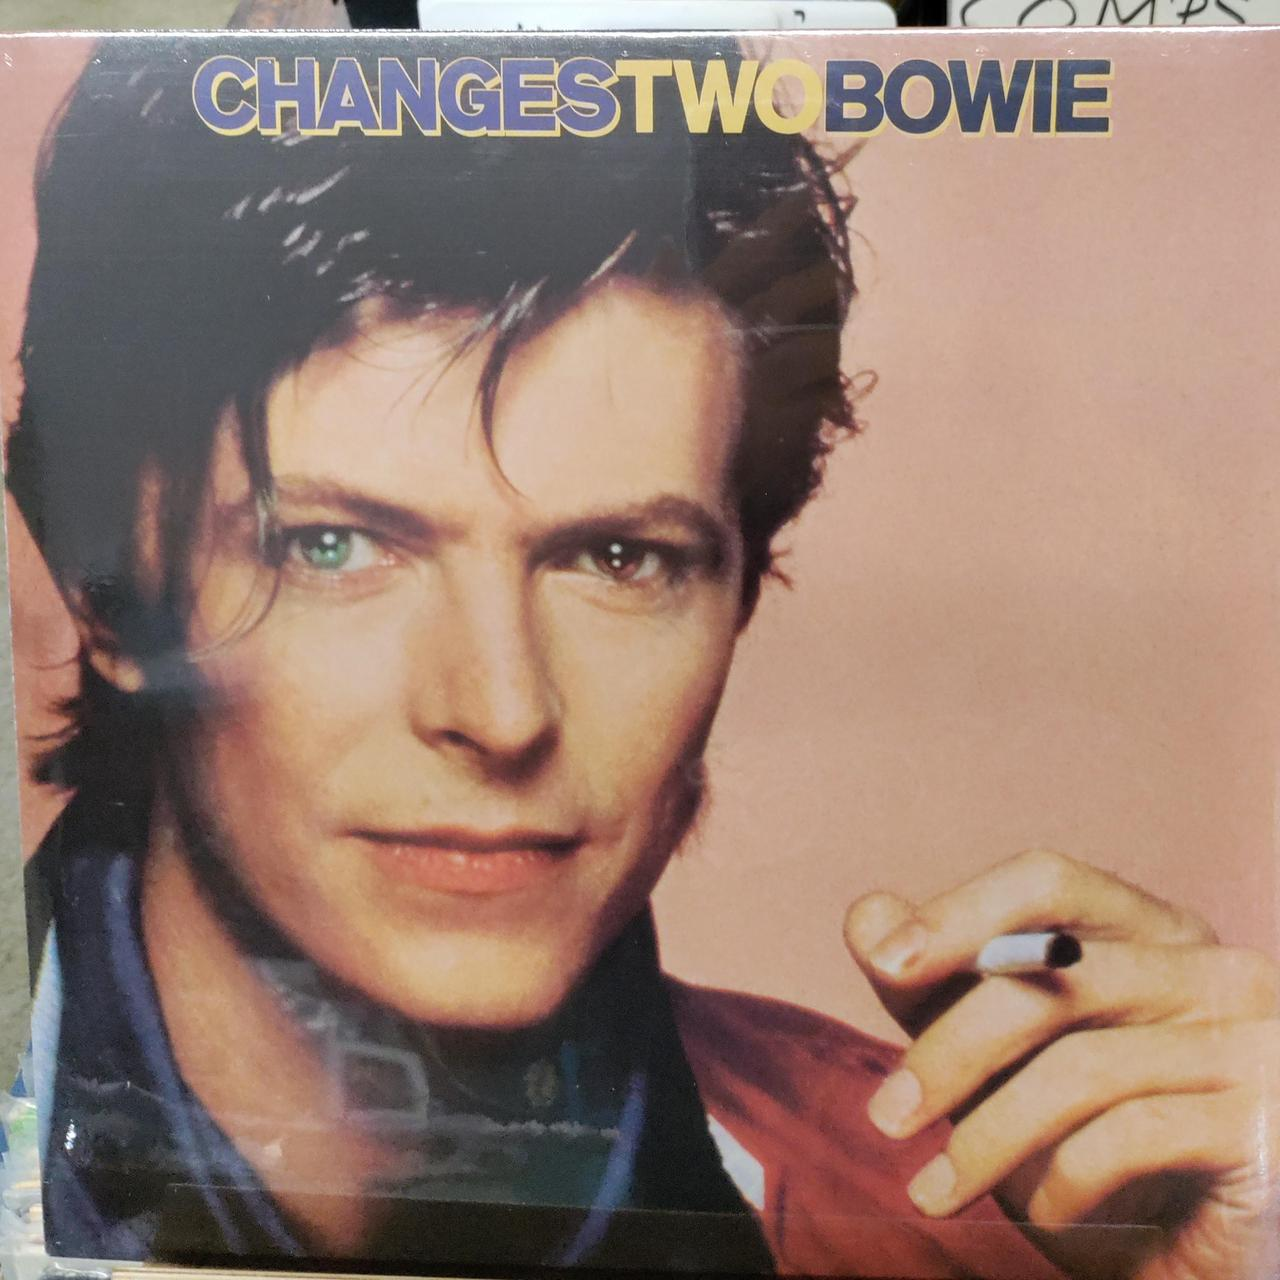 Product Image 1 - David Bowie changes two